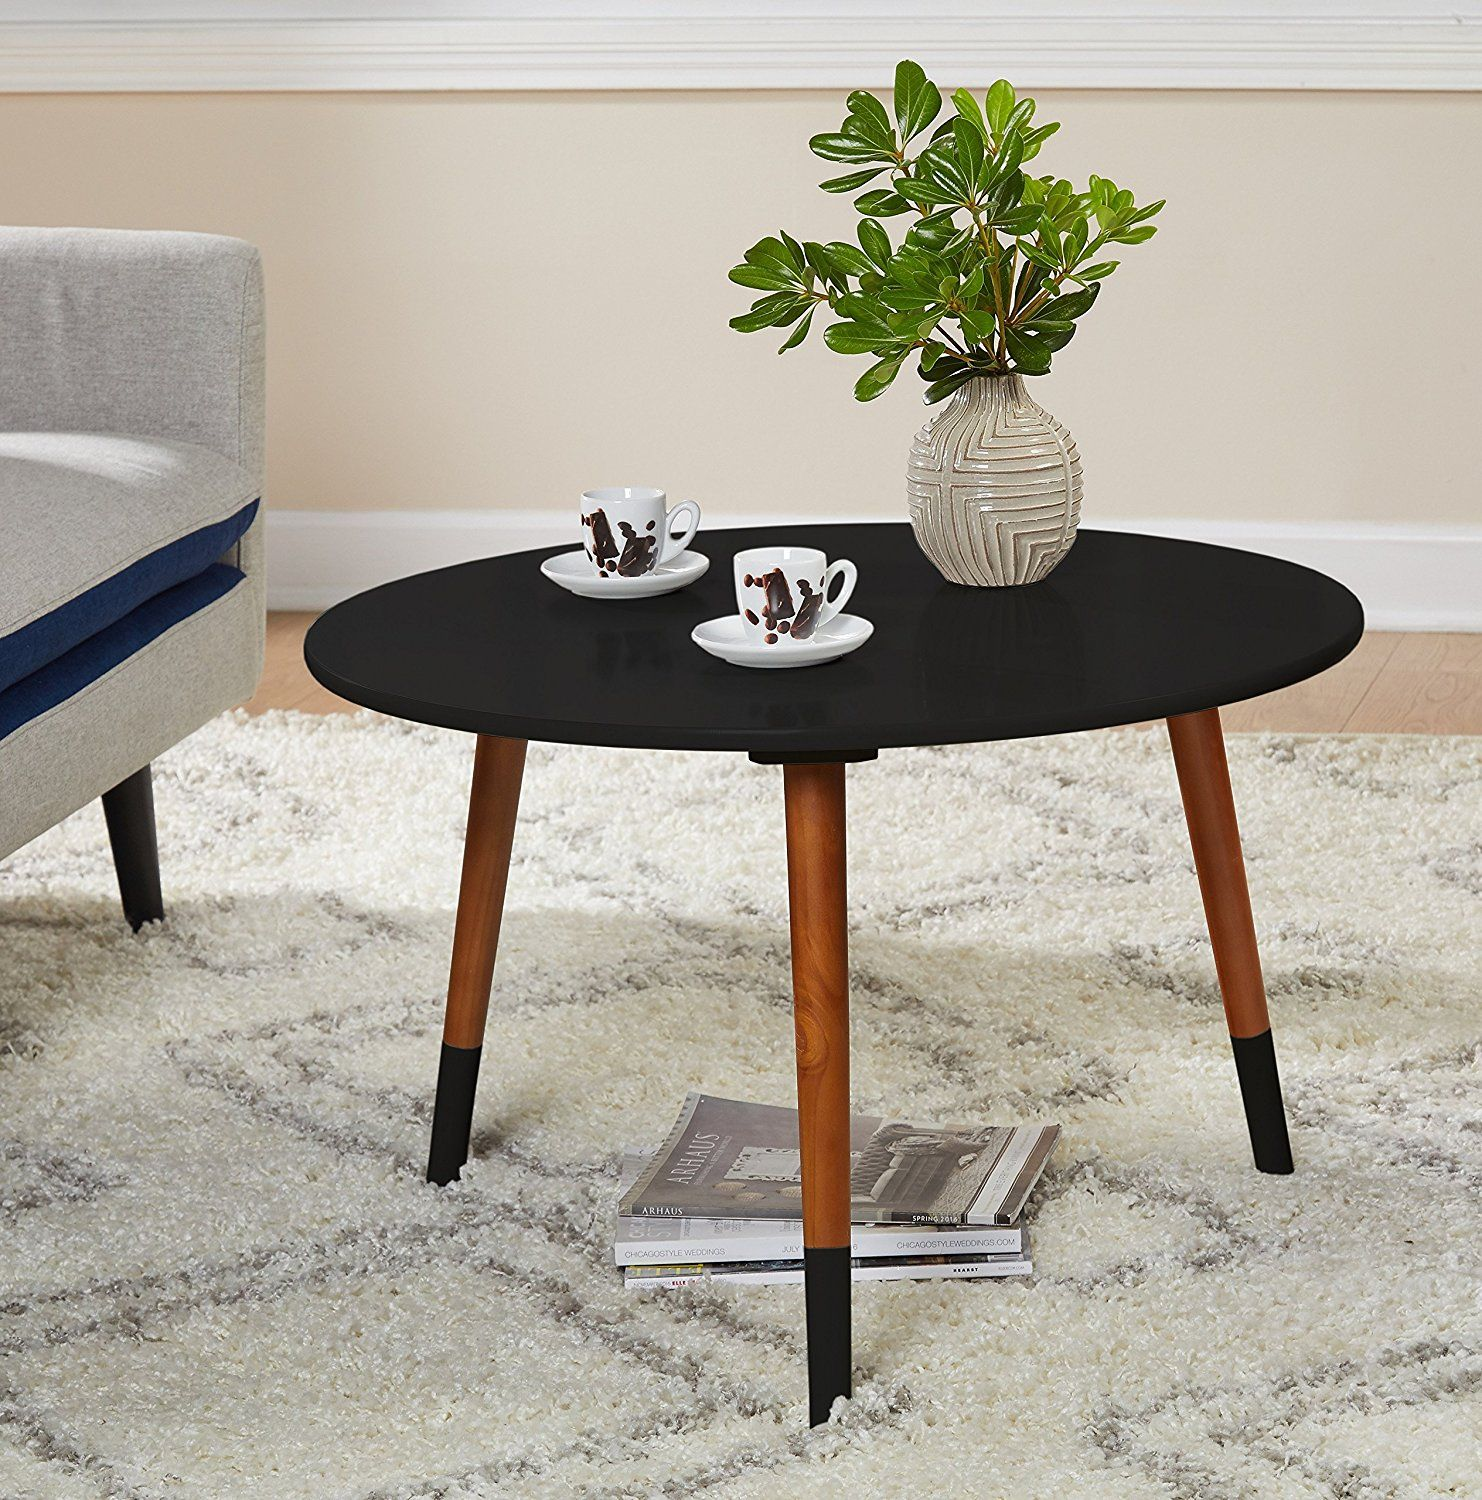 Amazon Com Target Marketing Systems Livia Collection Ultra Modern Round Coffee Table With Splayed Le Round Coffee Table Modern Coffee Table Round Coffee Table [ 1500 x 1482 Pixel ]